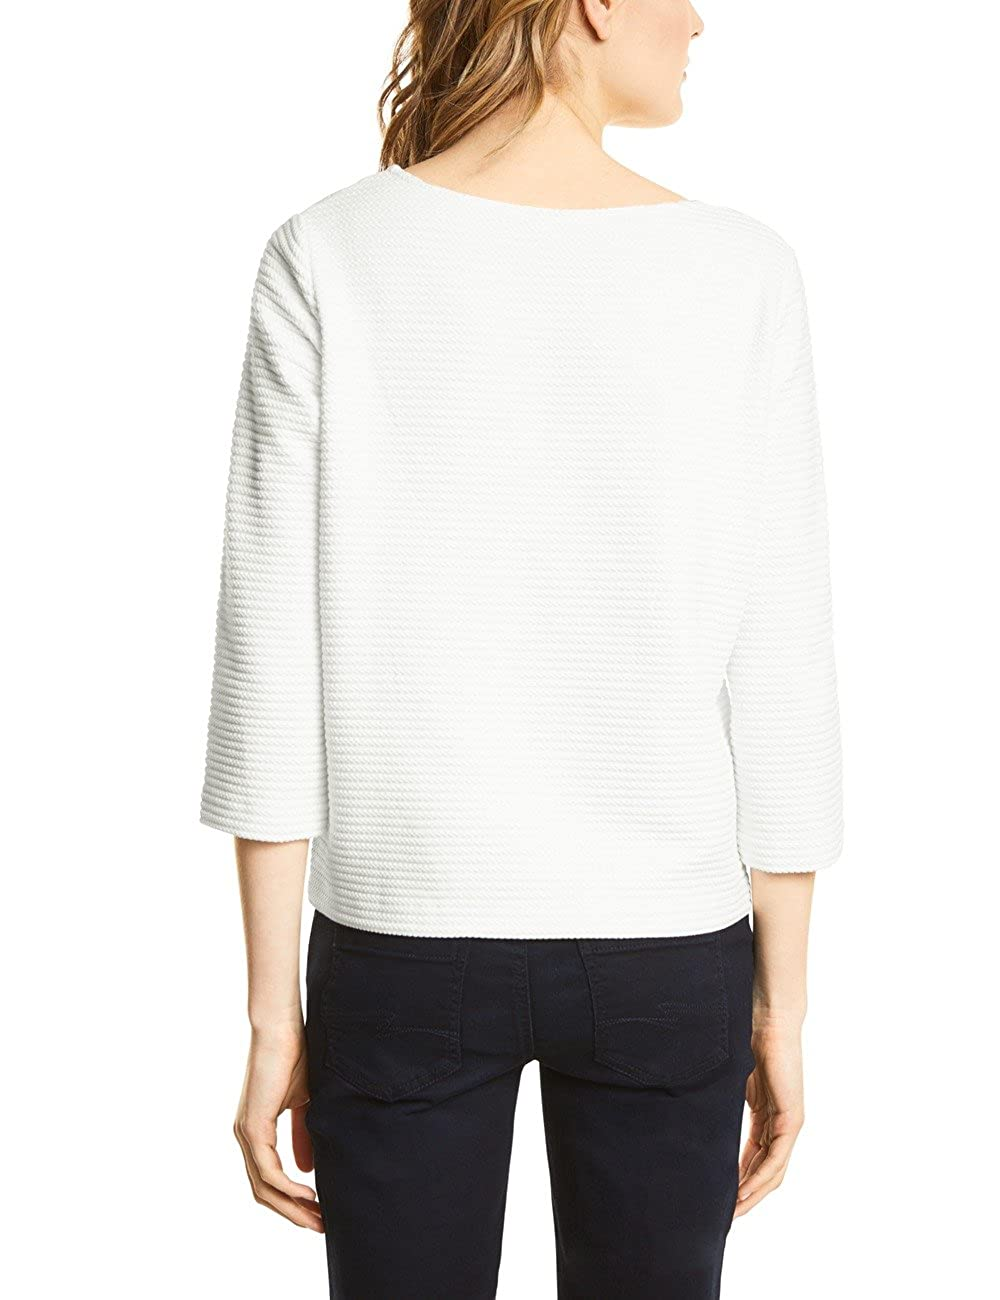 Street One Damen Sweatshirt